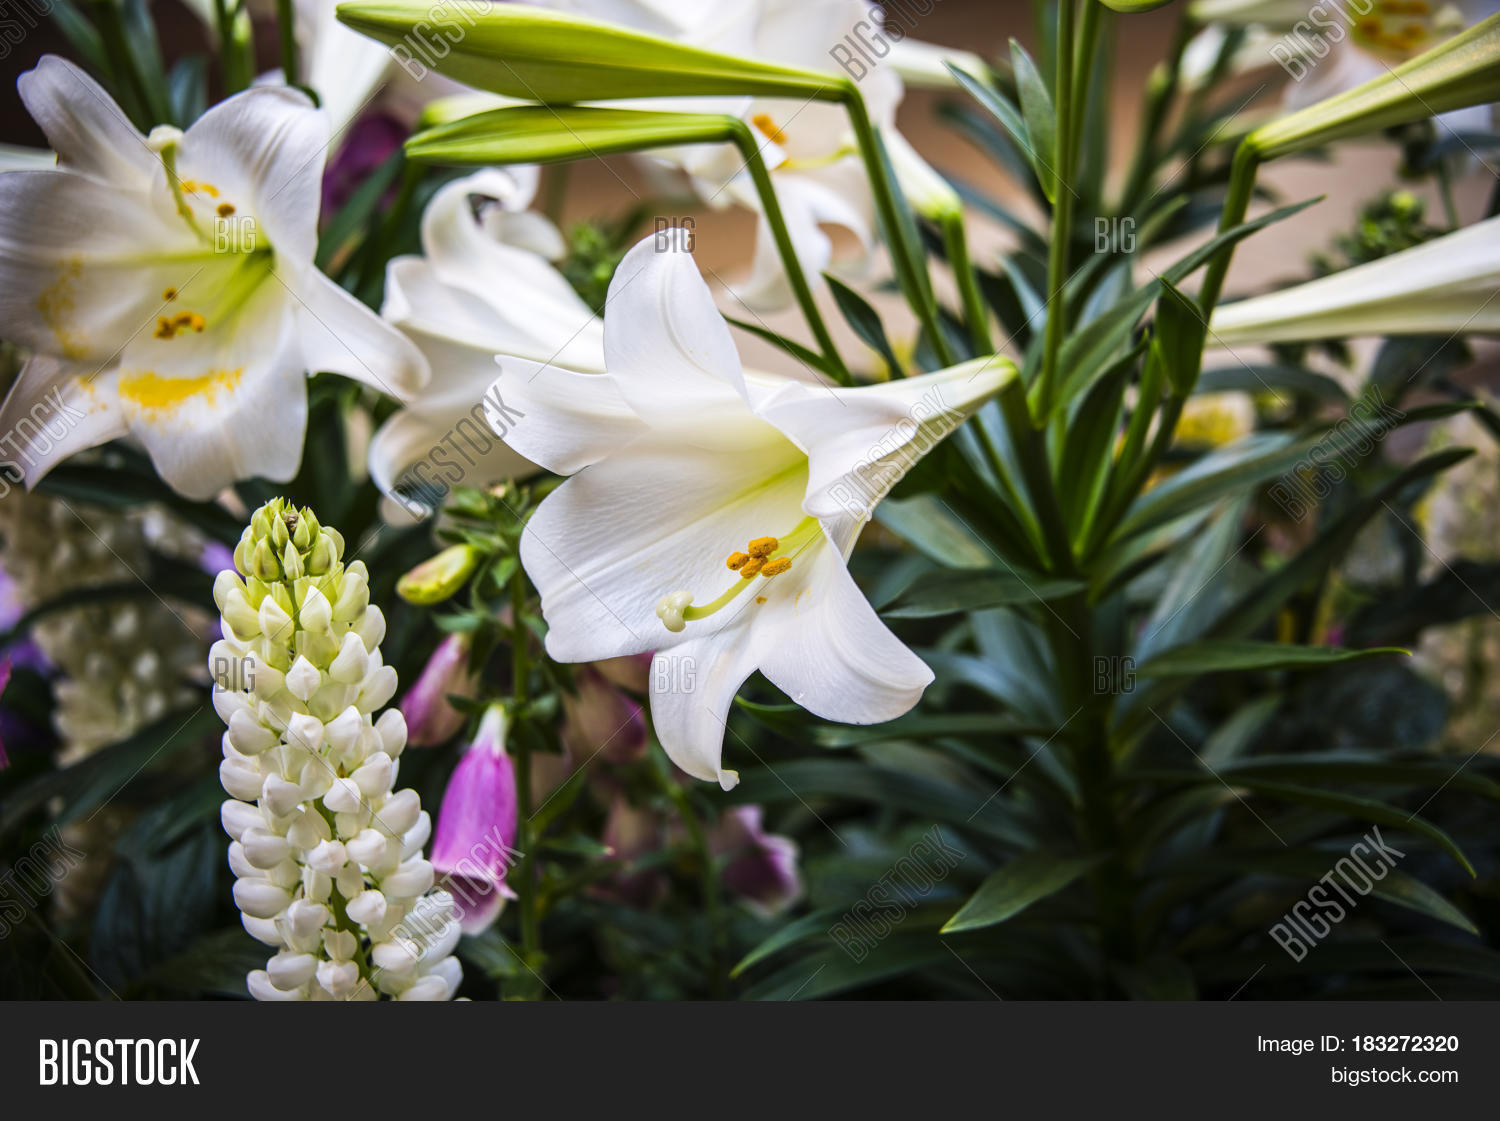 Flowers Flowers Image Photo Free Trial Bigstock